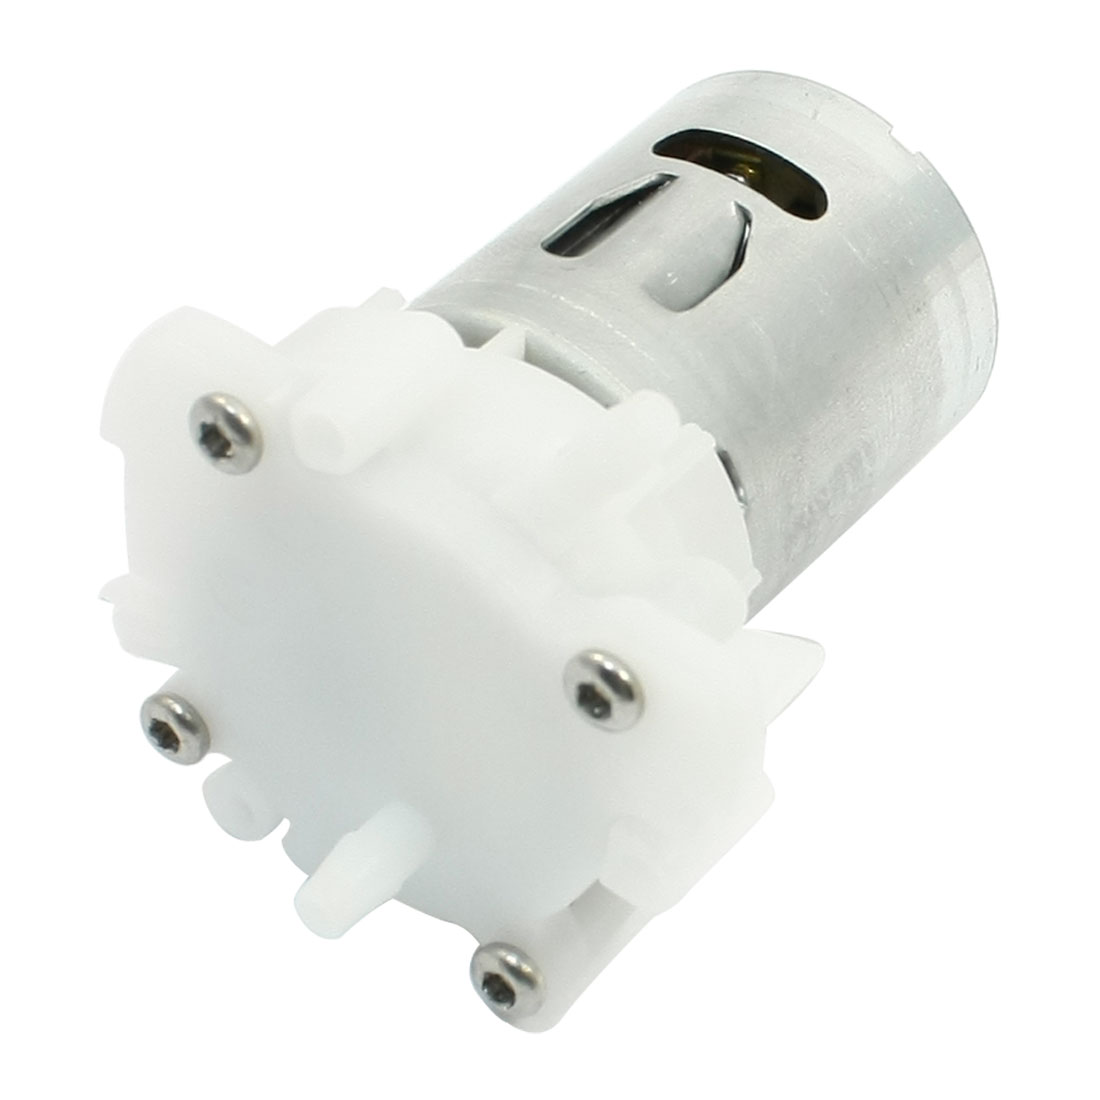 Tea Accessories White Plastic Base Pumping Motor DC 7.2V